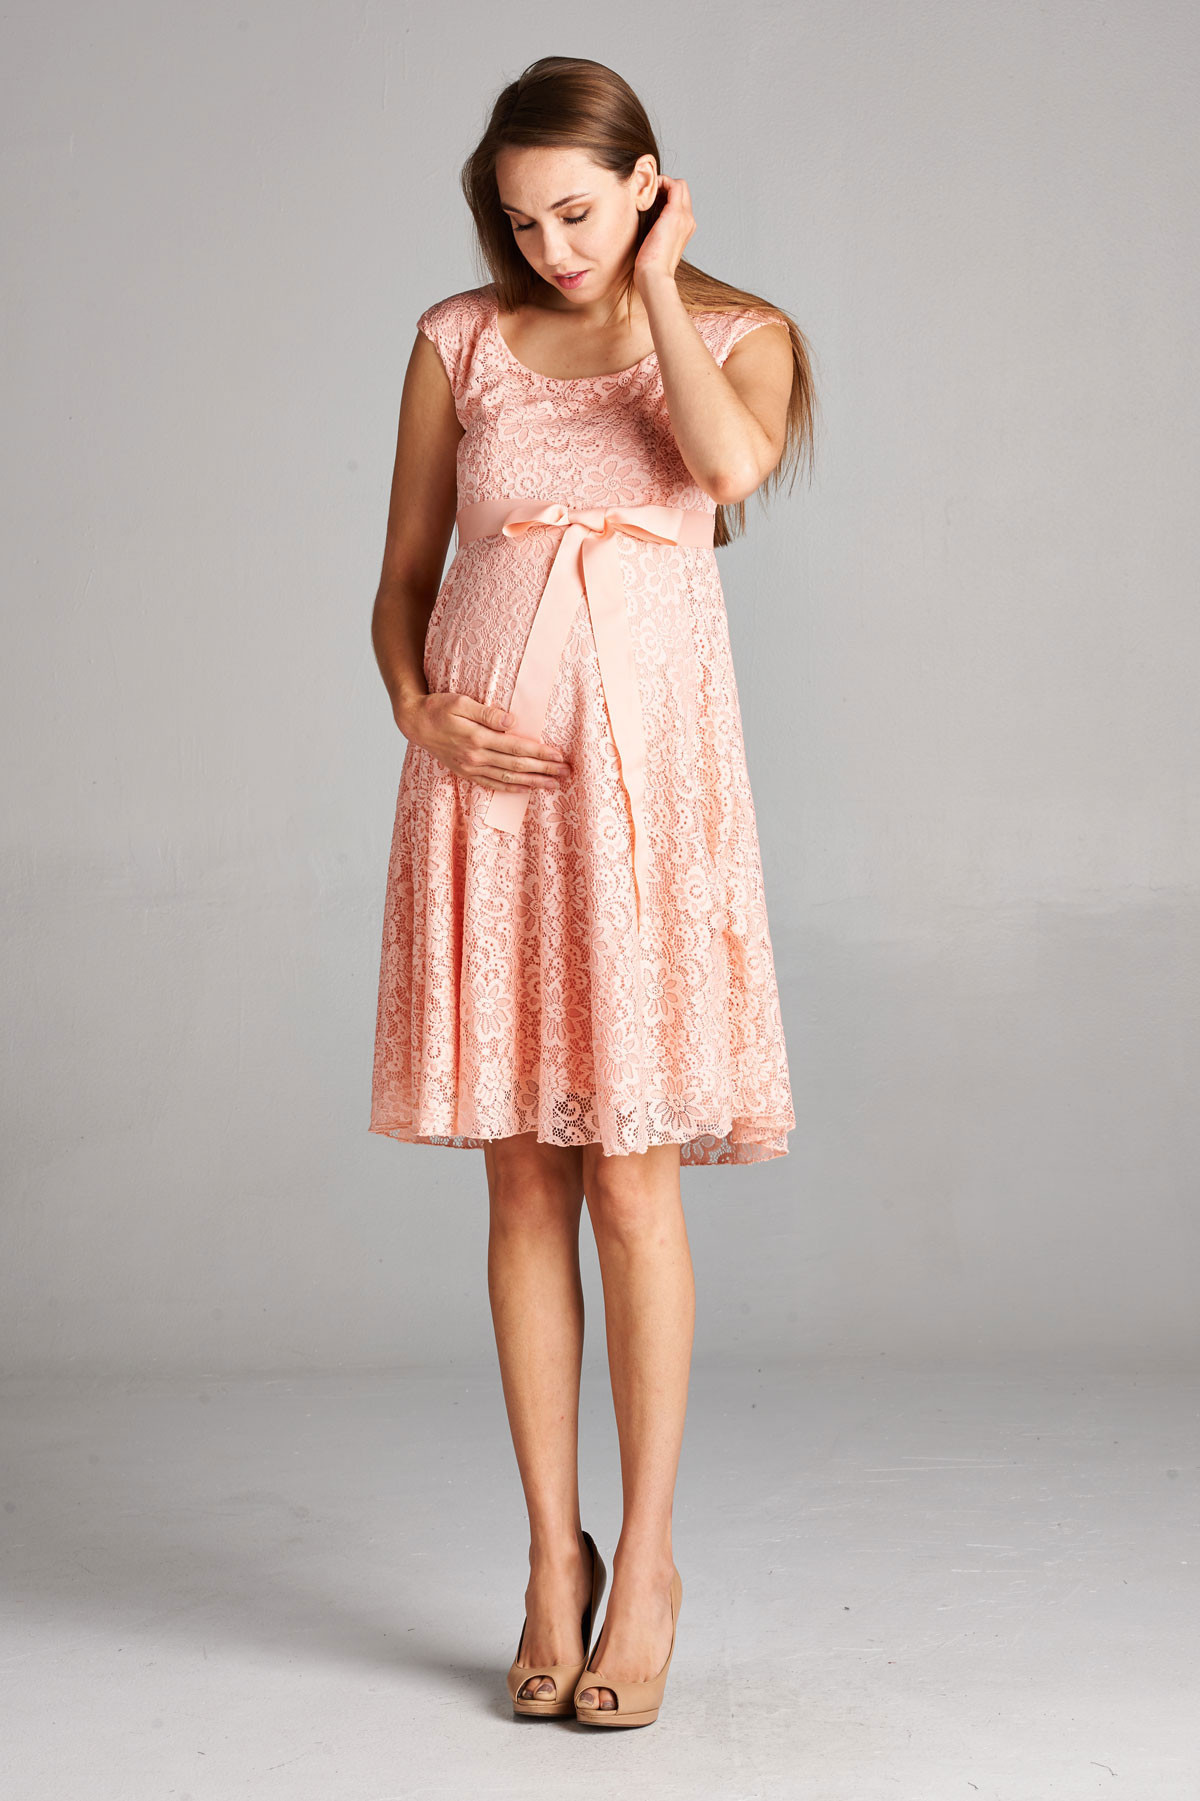 Prom dresses for pregnant ladies plus size women fashion clothing maternity prom dresses ombrellifo Images